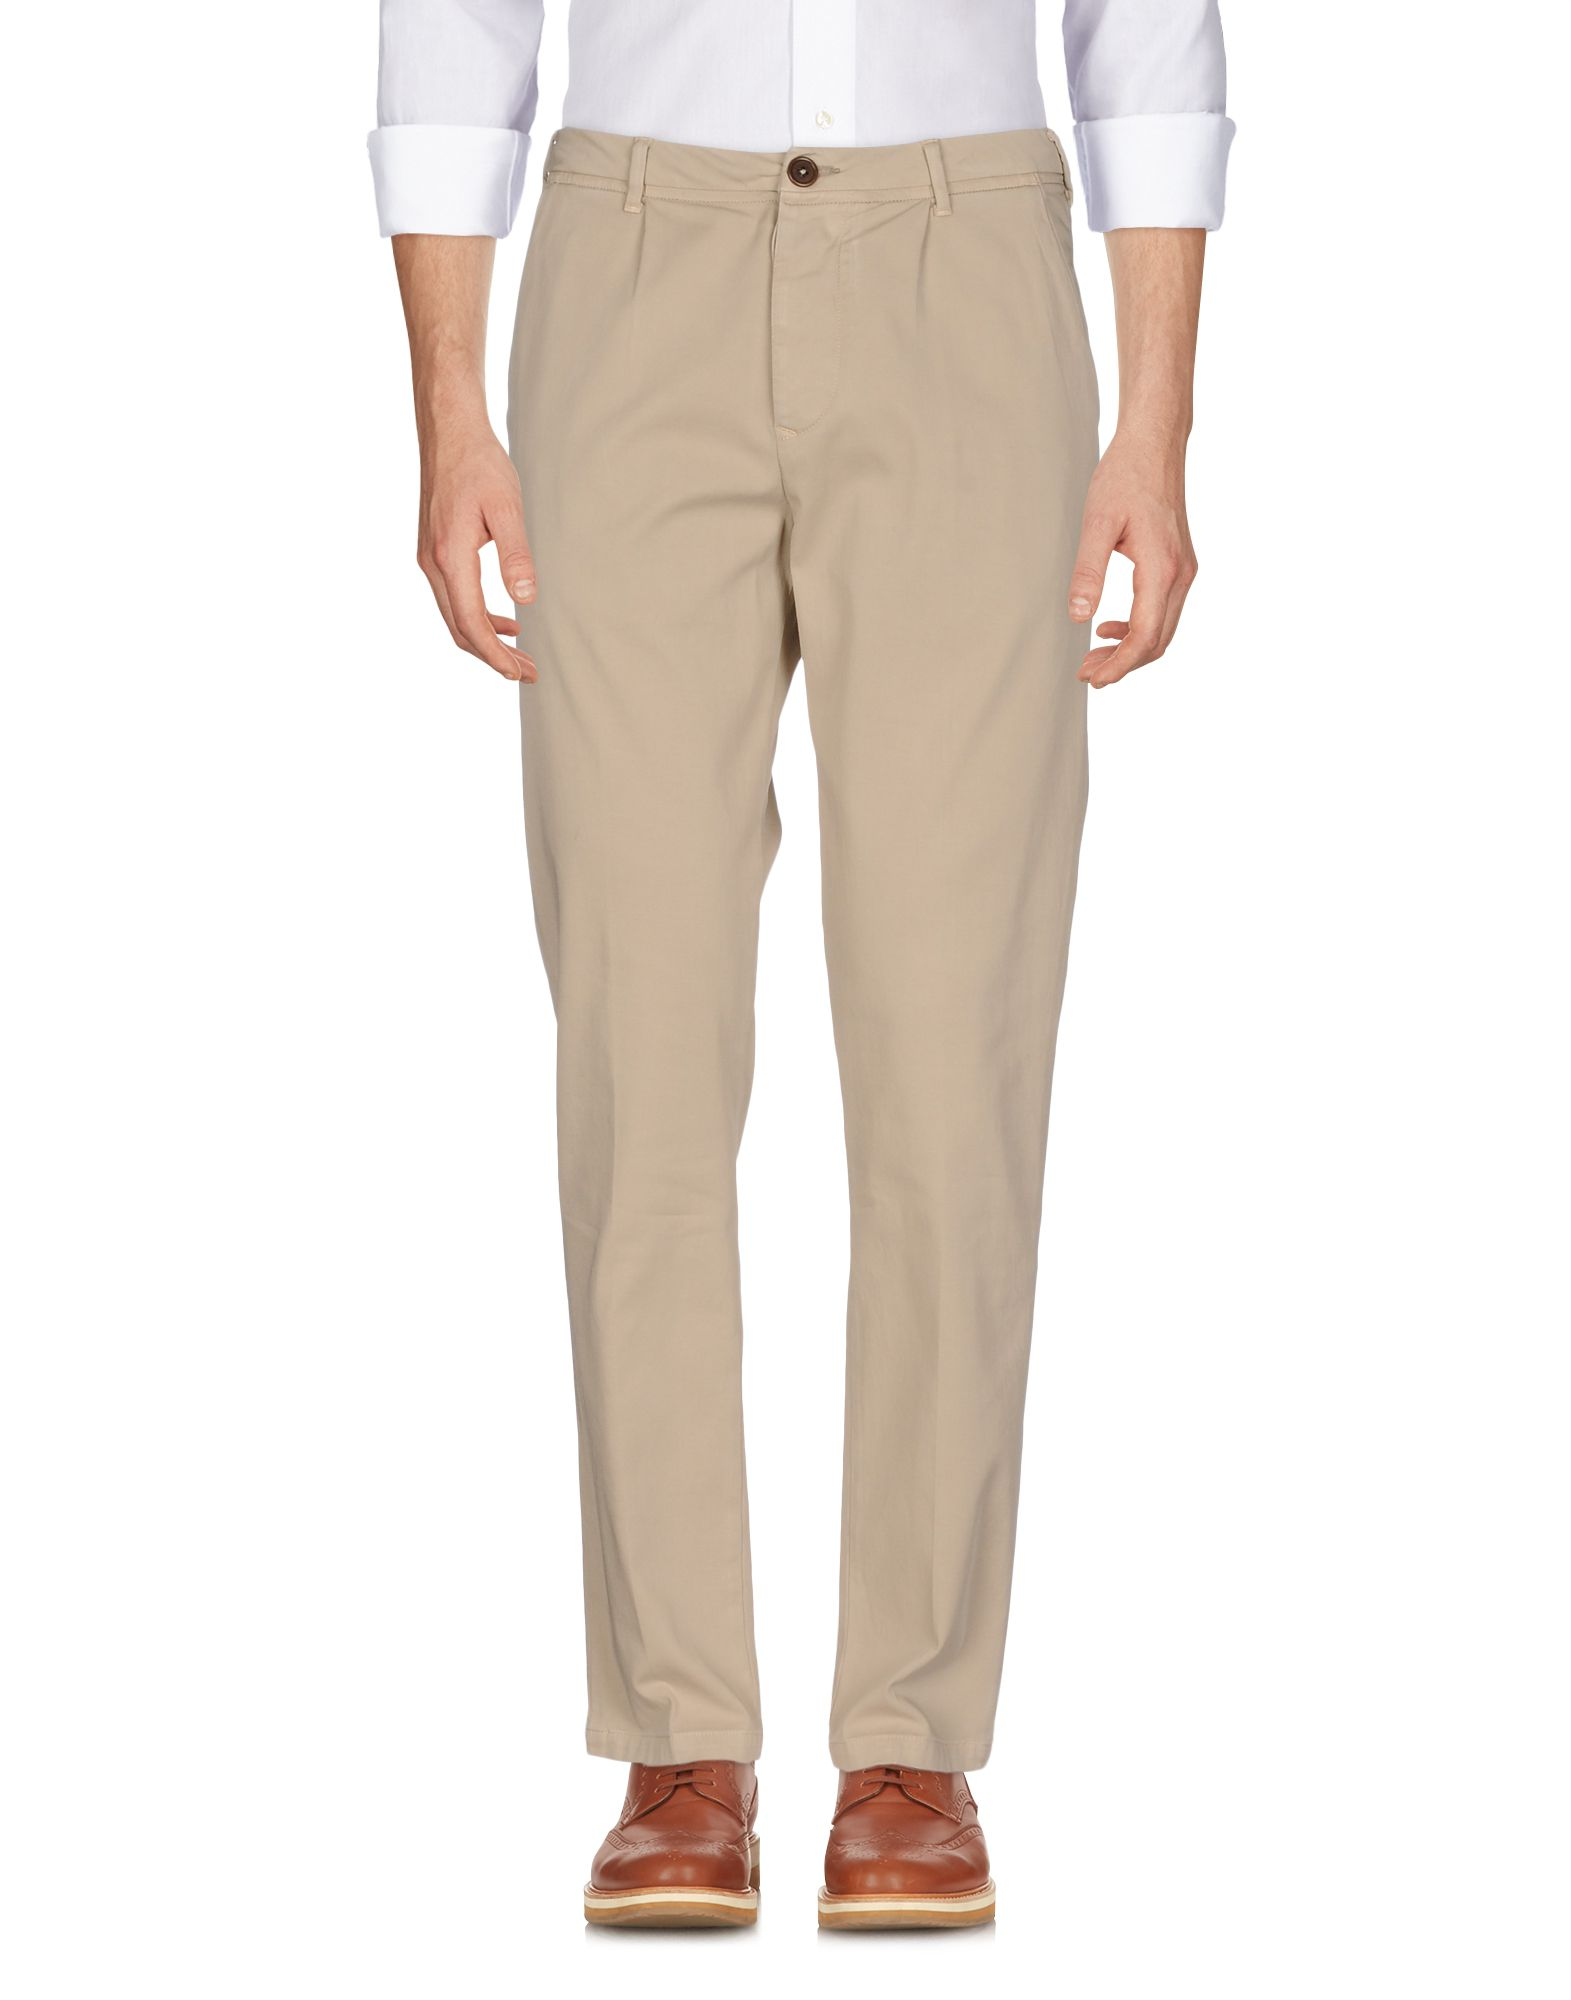 CARE LABEL Casual Pants in Beige